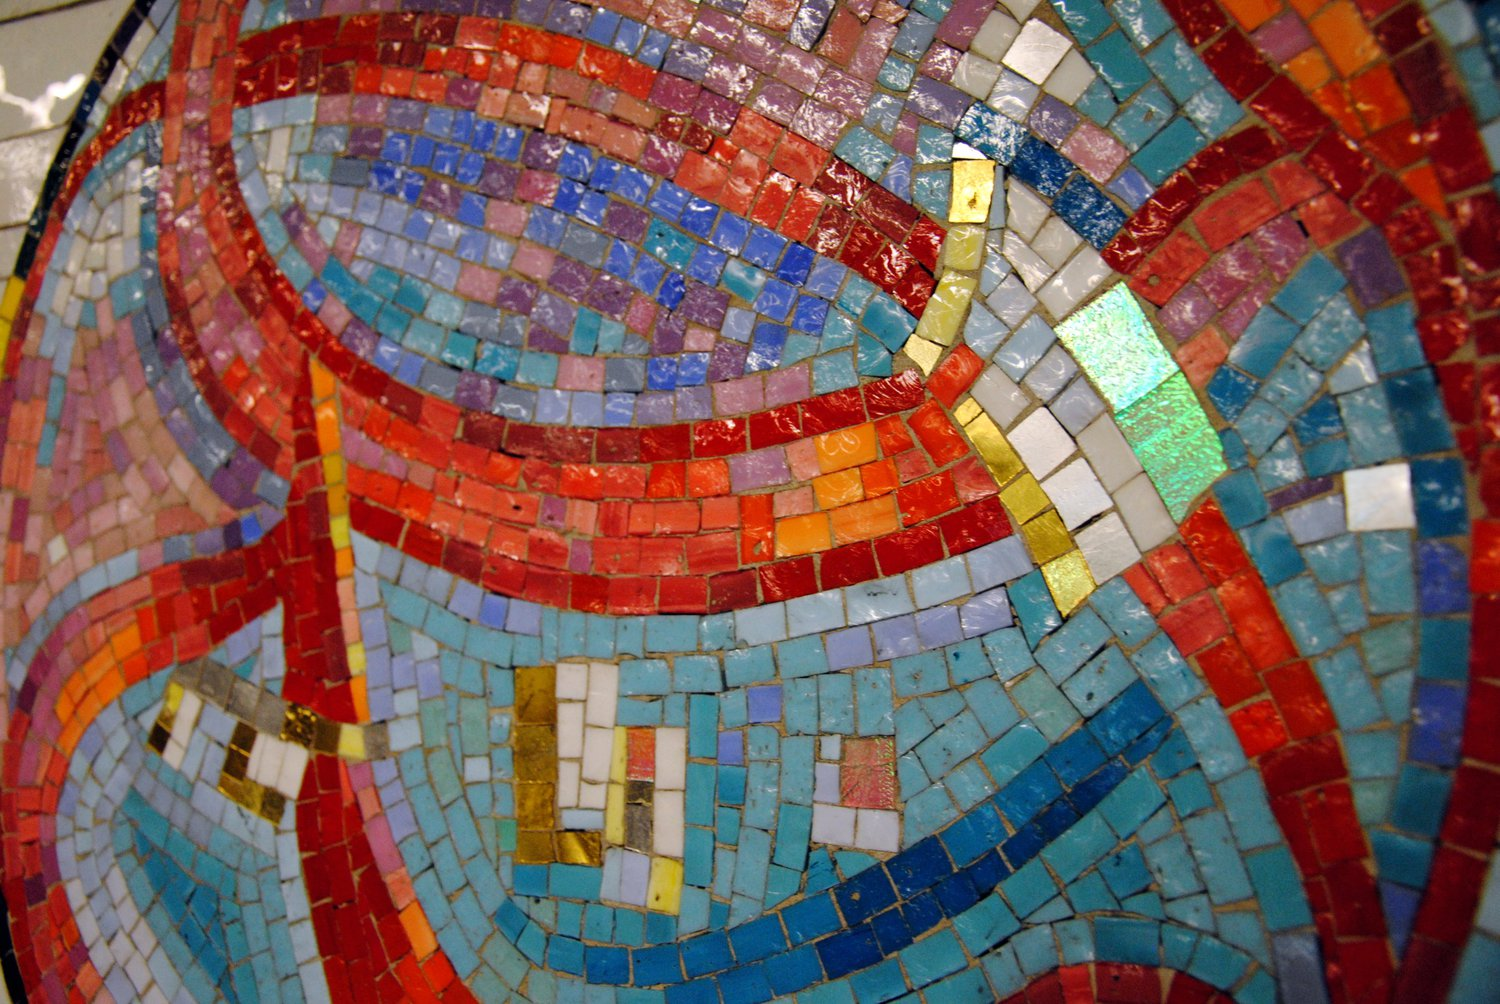 NYC Subway Mosaic Art